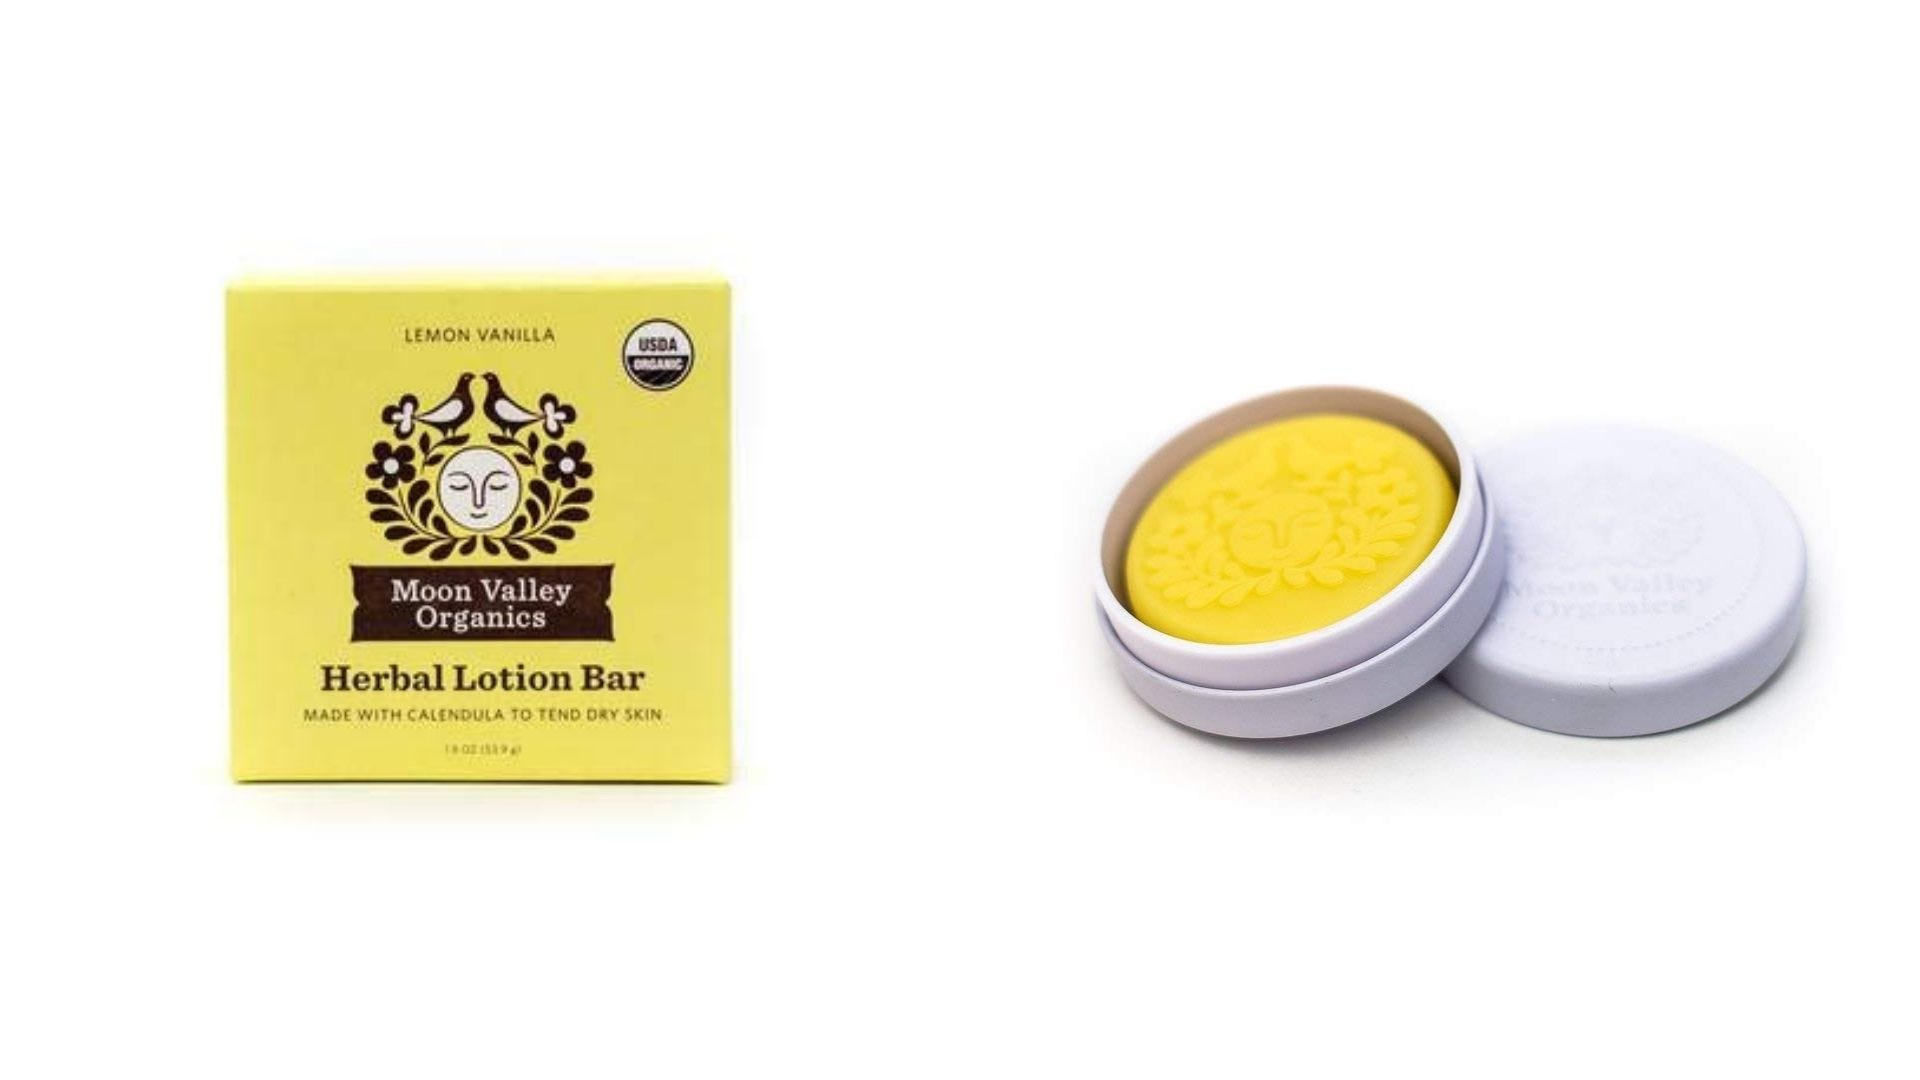 A yellow box and a round container with a solid hand lotion inside